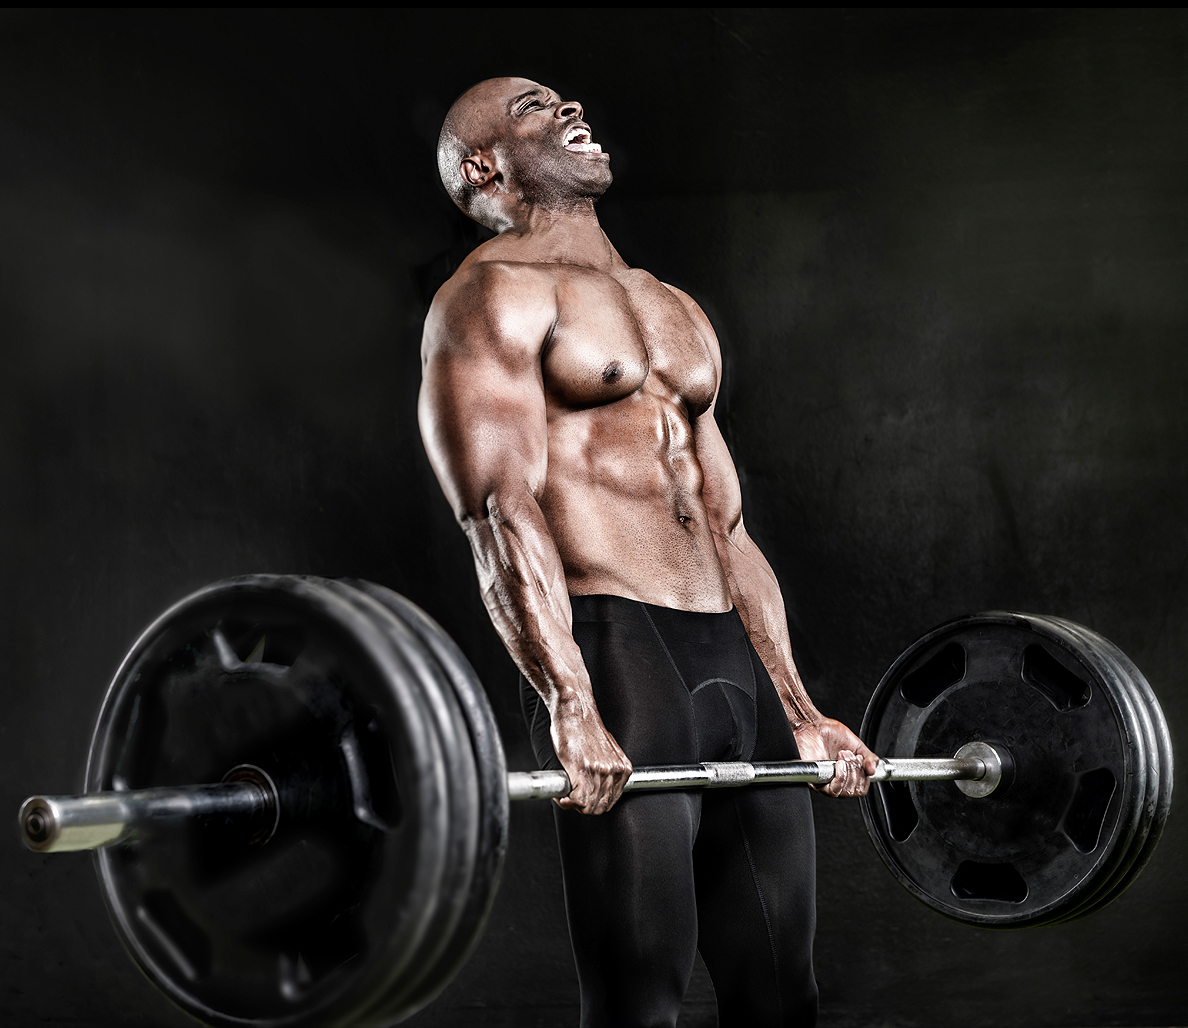 Gym guys want more than training